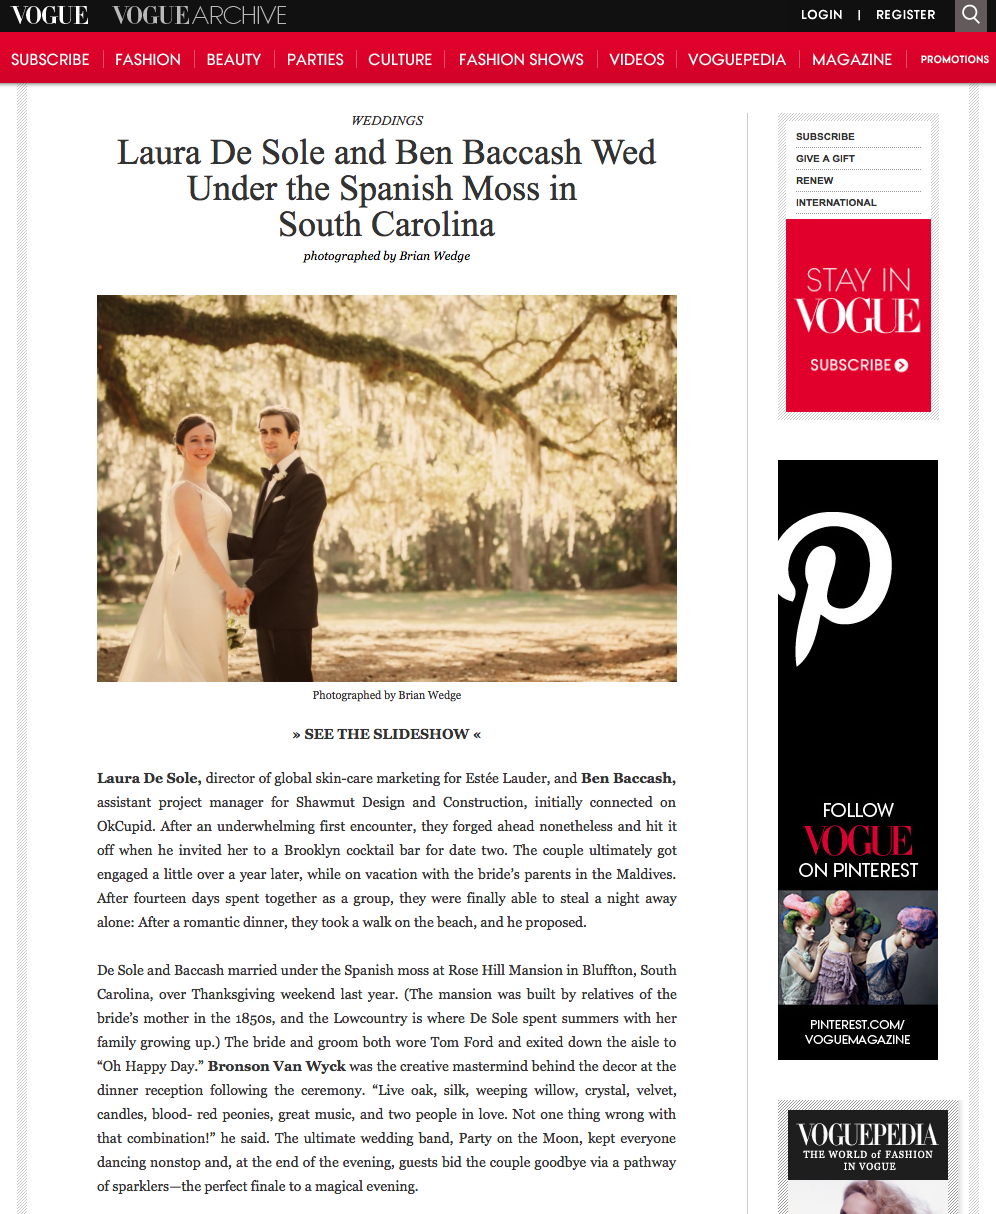 The VOGUE feature article of Laura De Sole & Ben Baccash